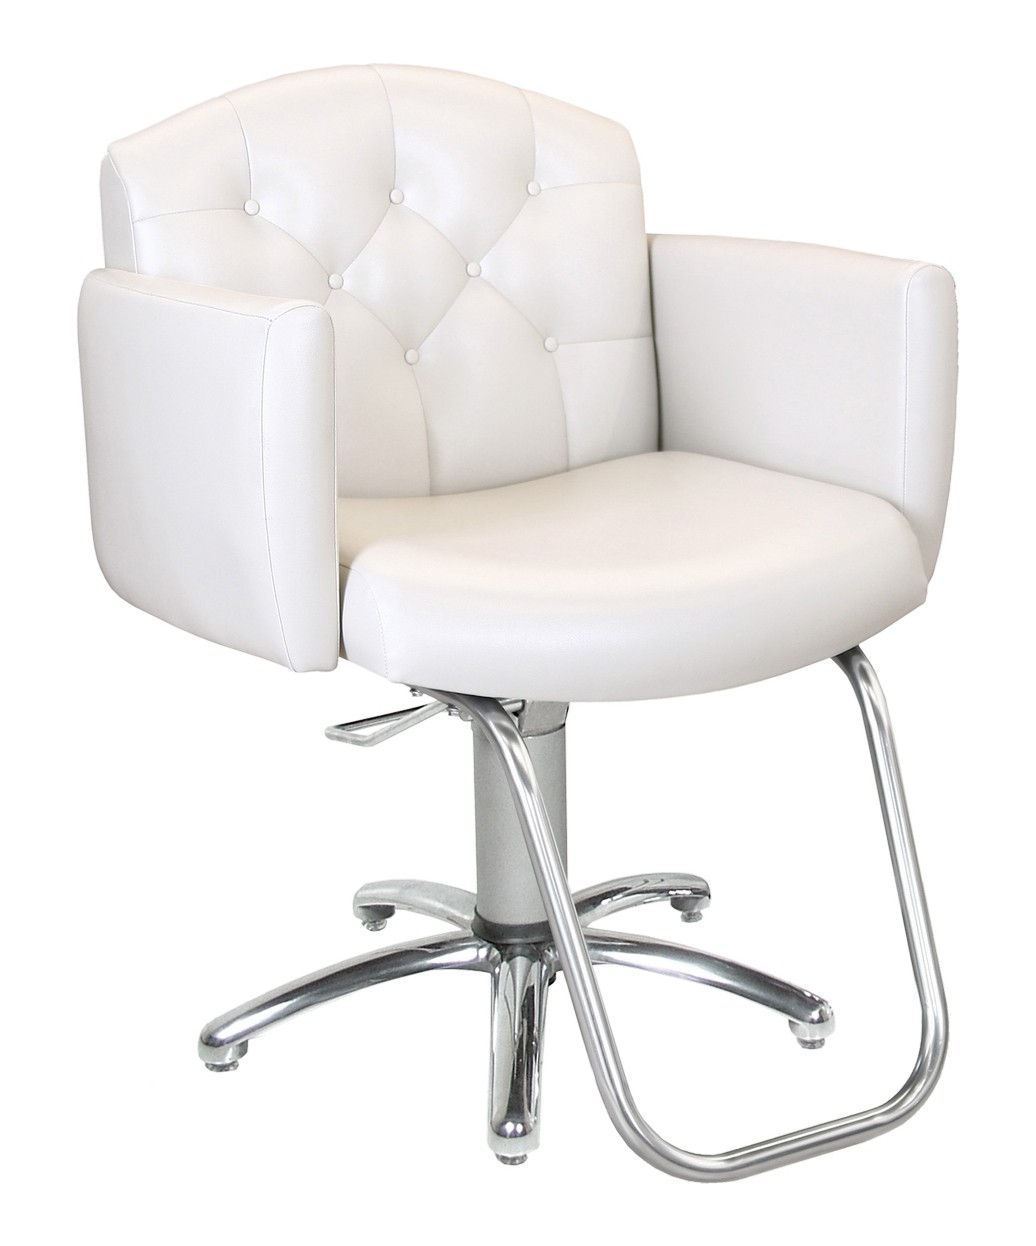 Collins 7100 Ashton Styling Chair